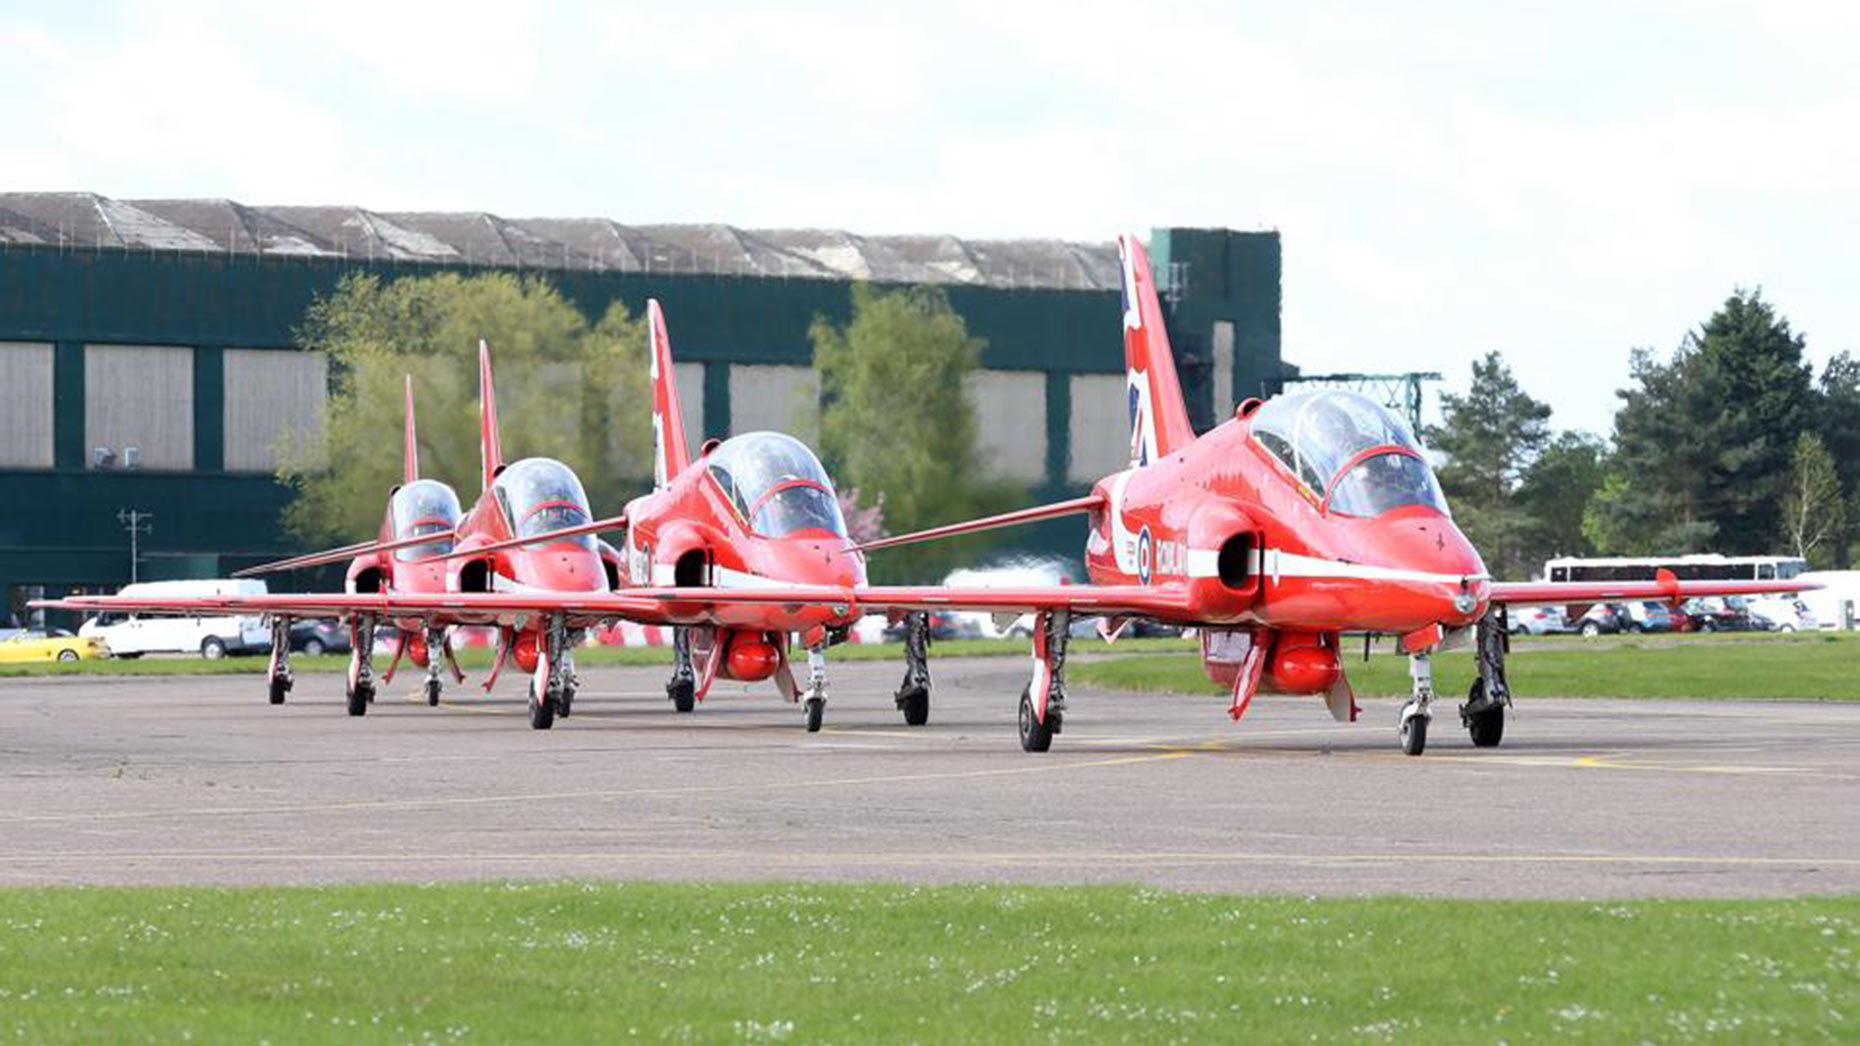 The Red Arrows returning to their RAF Scampton base. Photo: RAF Red Arrows